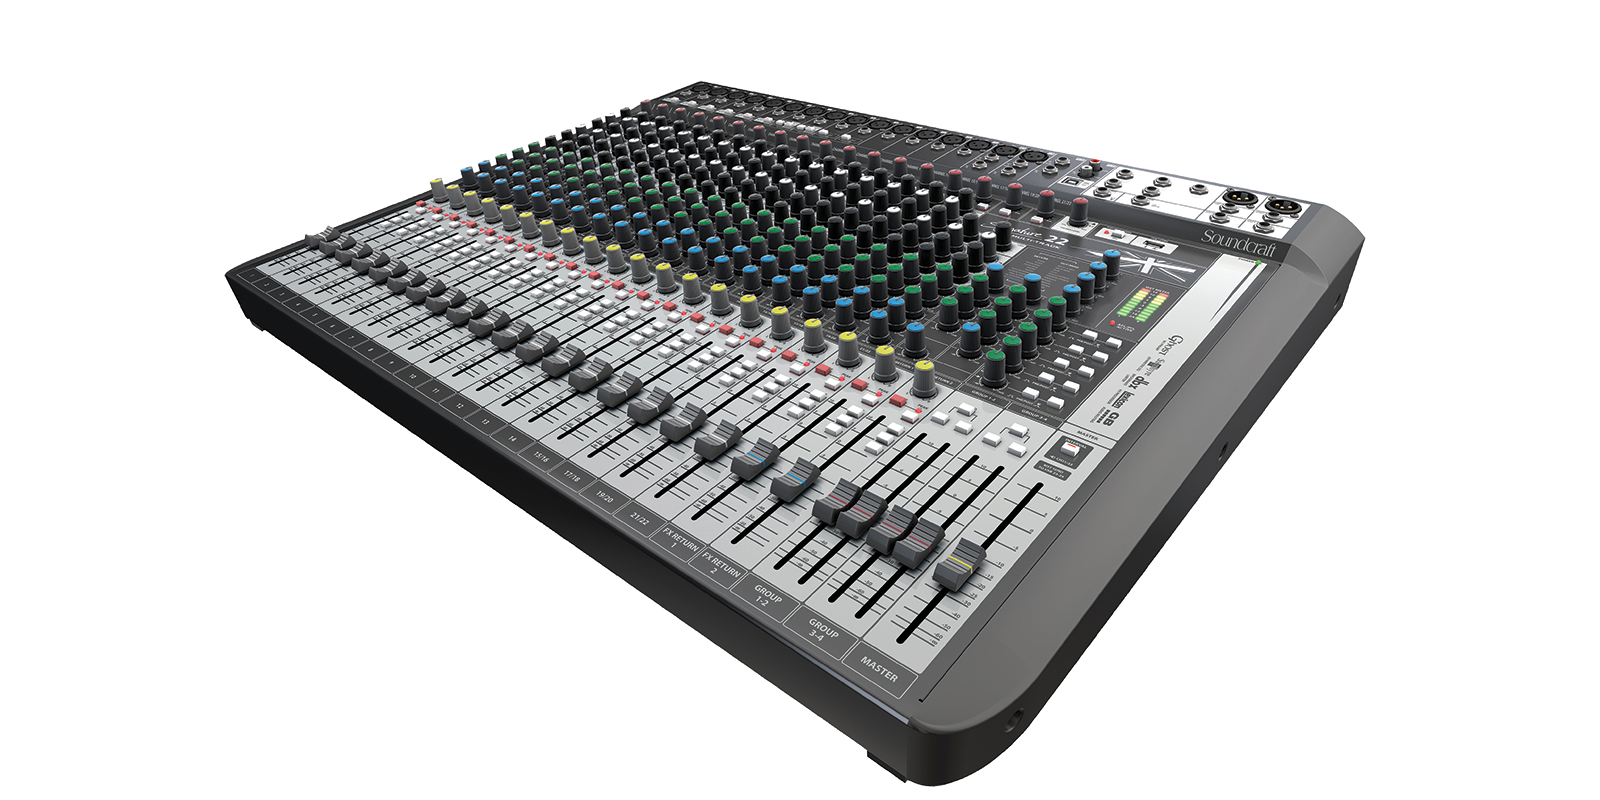 Signature 22 Mtk Soundcraft Professional Audio Mixers Line Mixer Electronics Circuits For You Larger Images